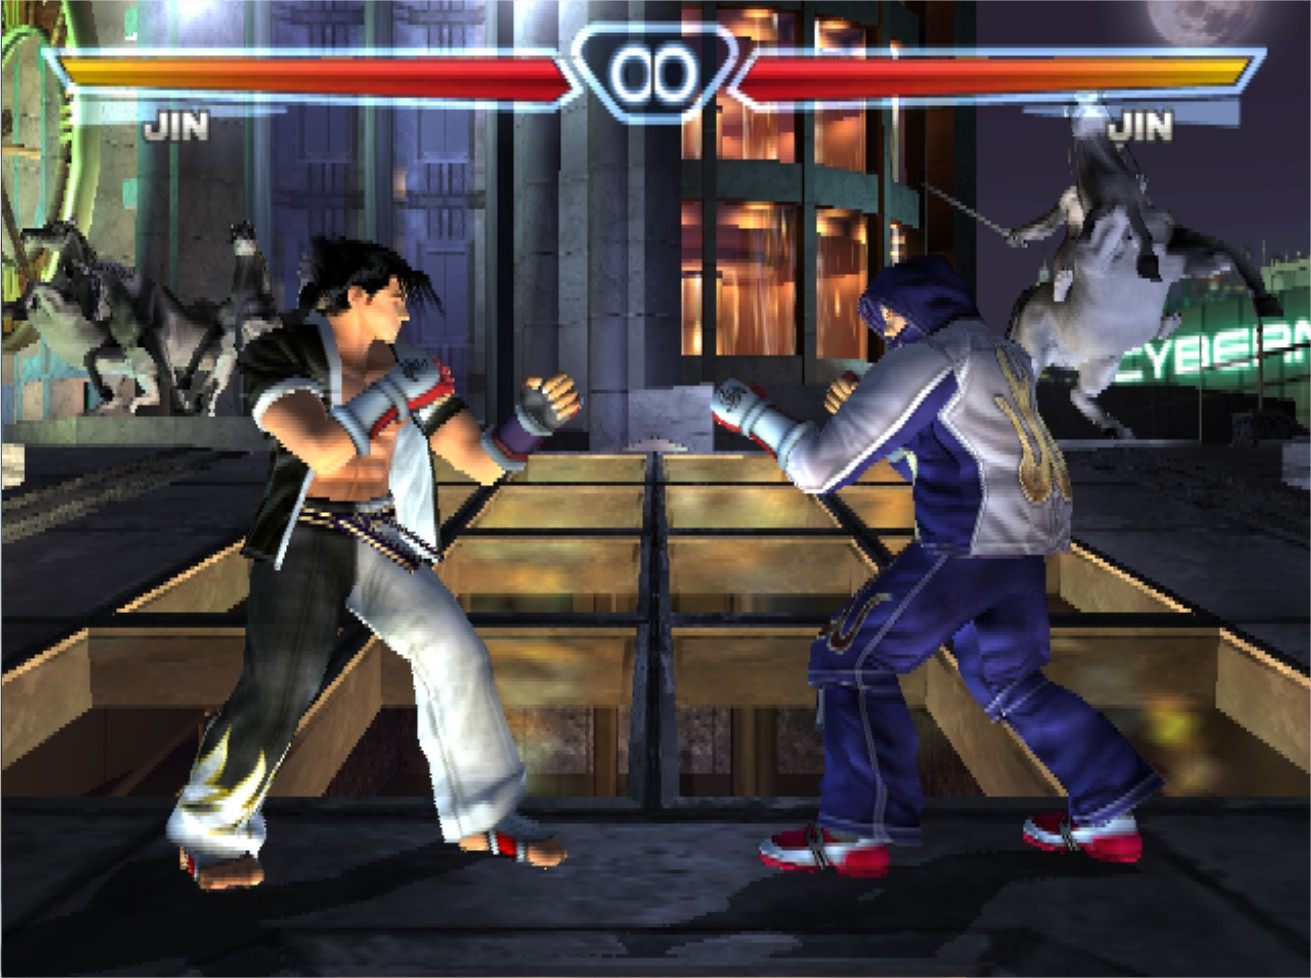 Rttp Tekken 4 Is The Black Sheep Of The Series But I Miss It A